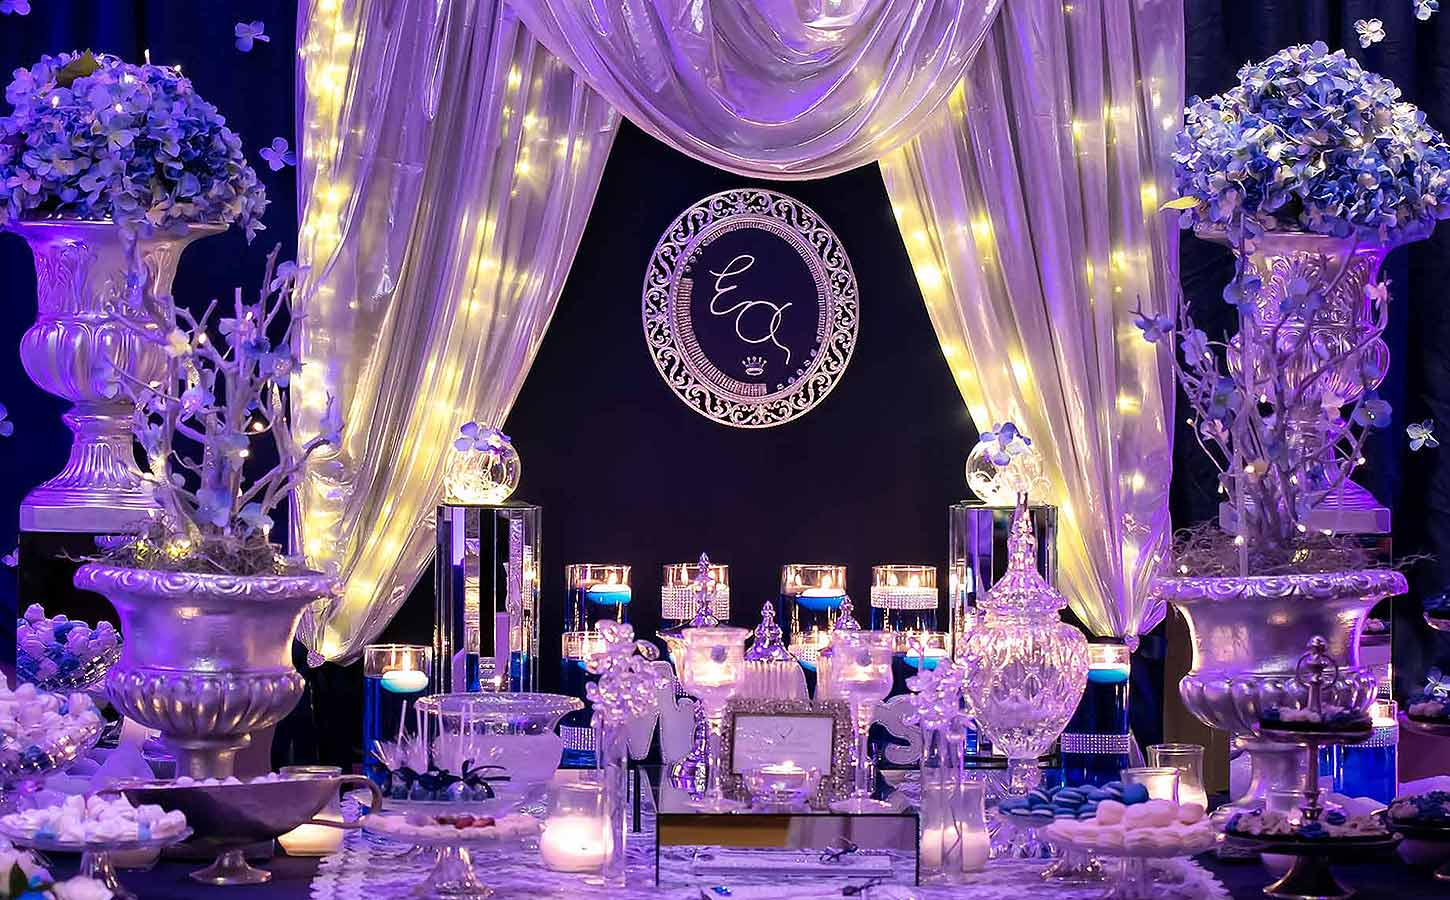 guest-book-table-in-blue-royal-table-diamond-events-luxury-event-planning-service